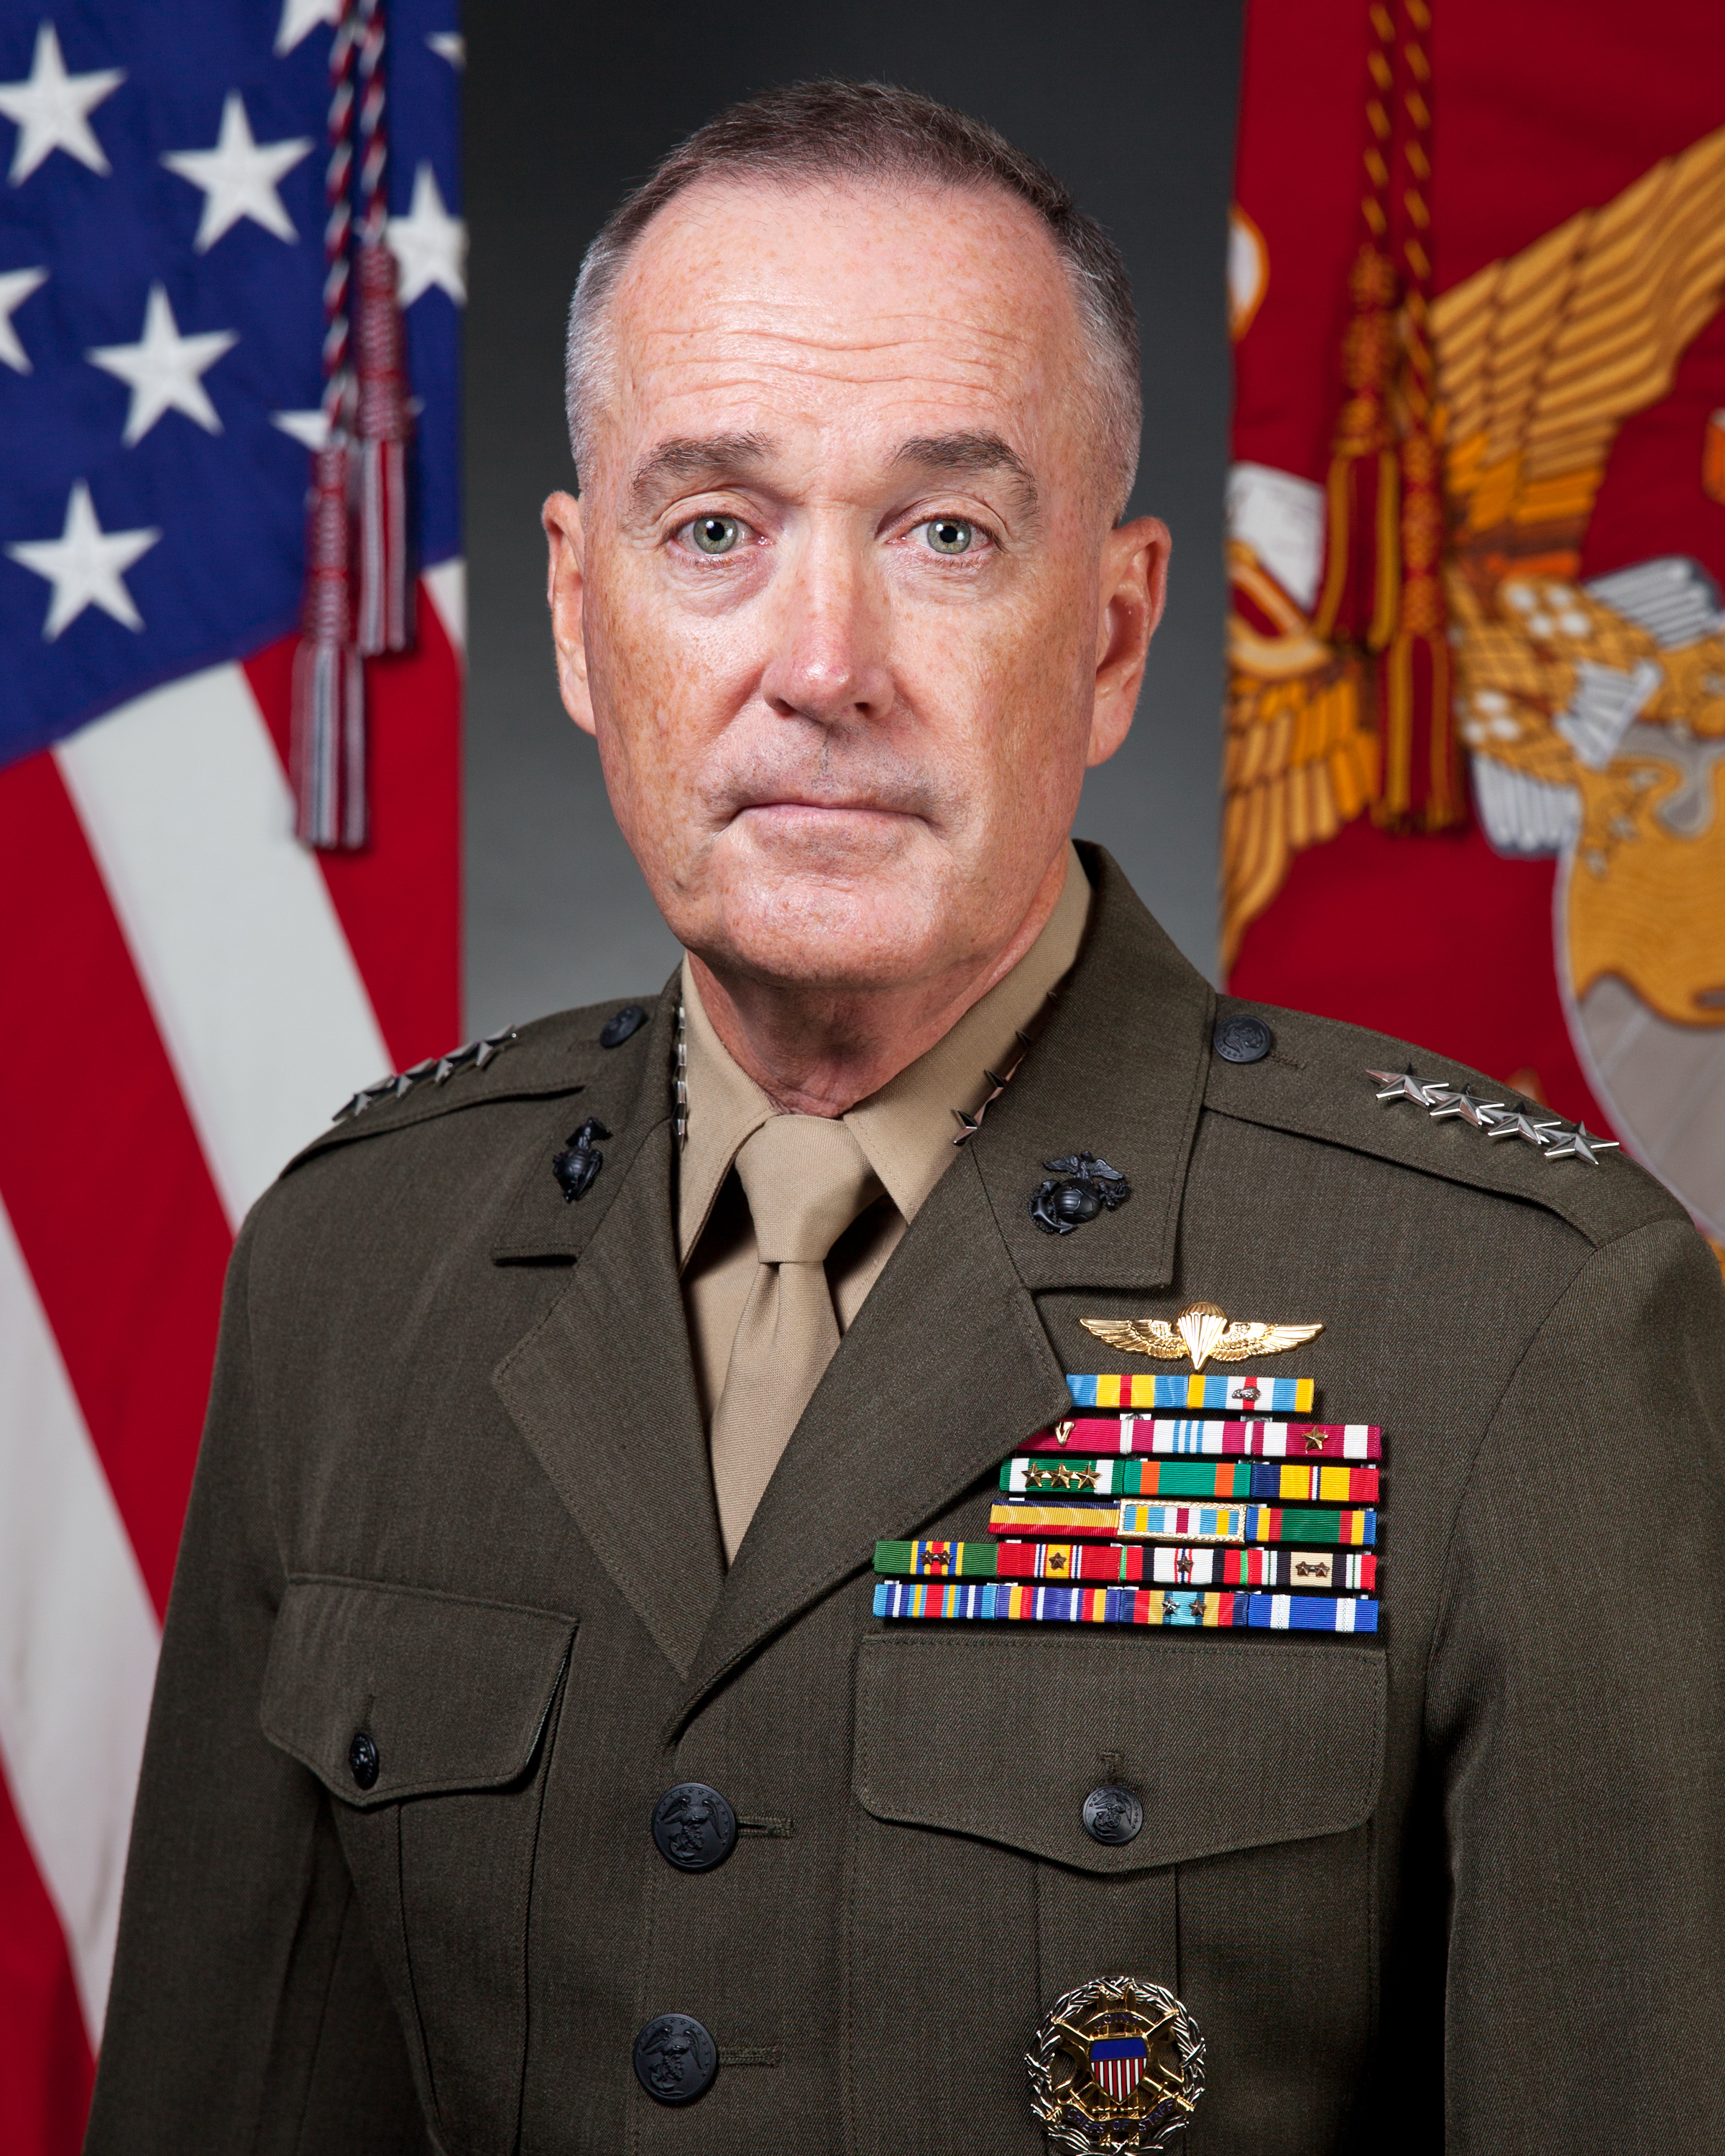 In General: In General Dunford's Most Recent Service Alpha Picture, He